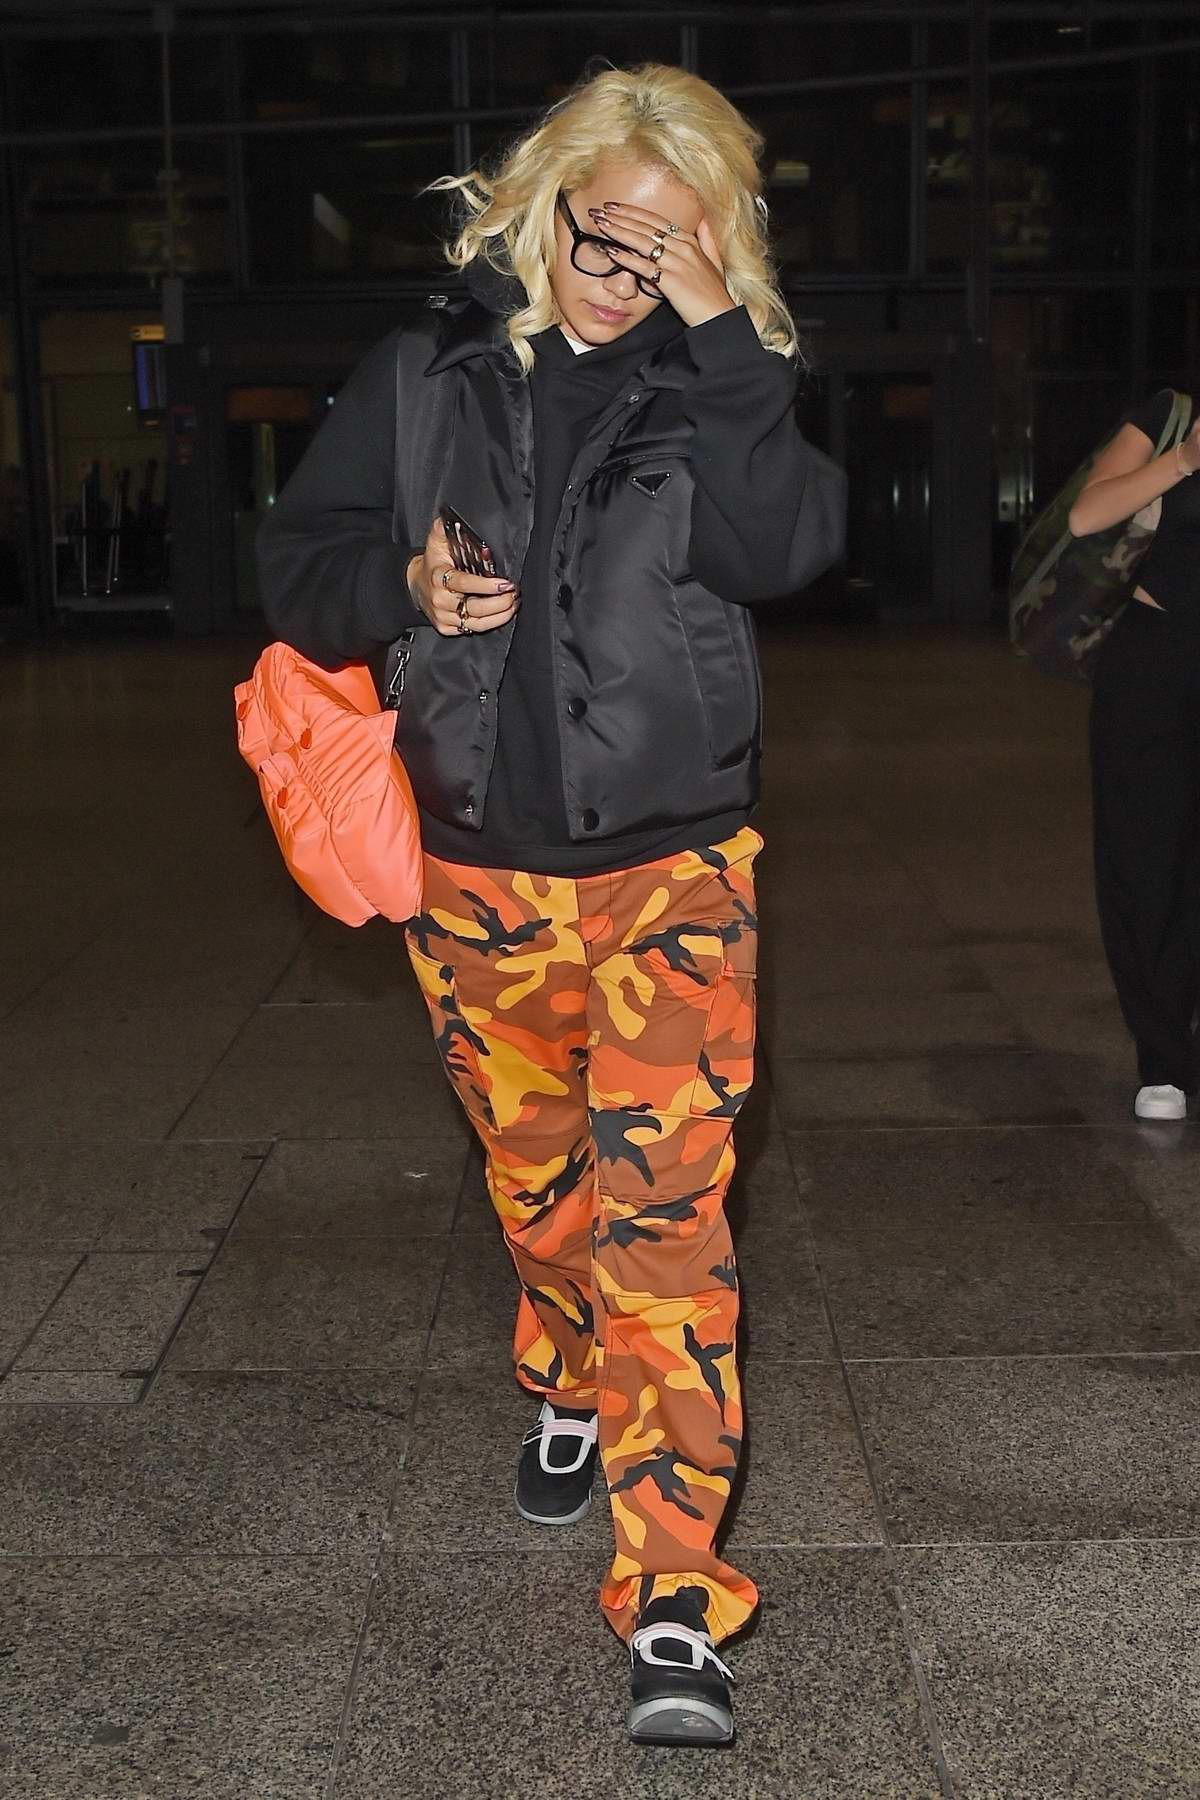 Rita Ora covers her face as she touch down at Heathrow airport wearing orange camo pants and black jacket, London, UK